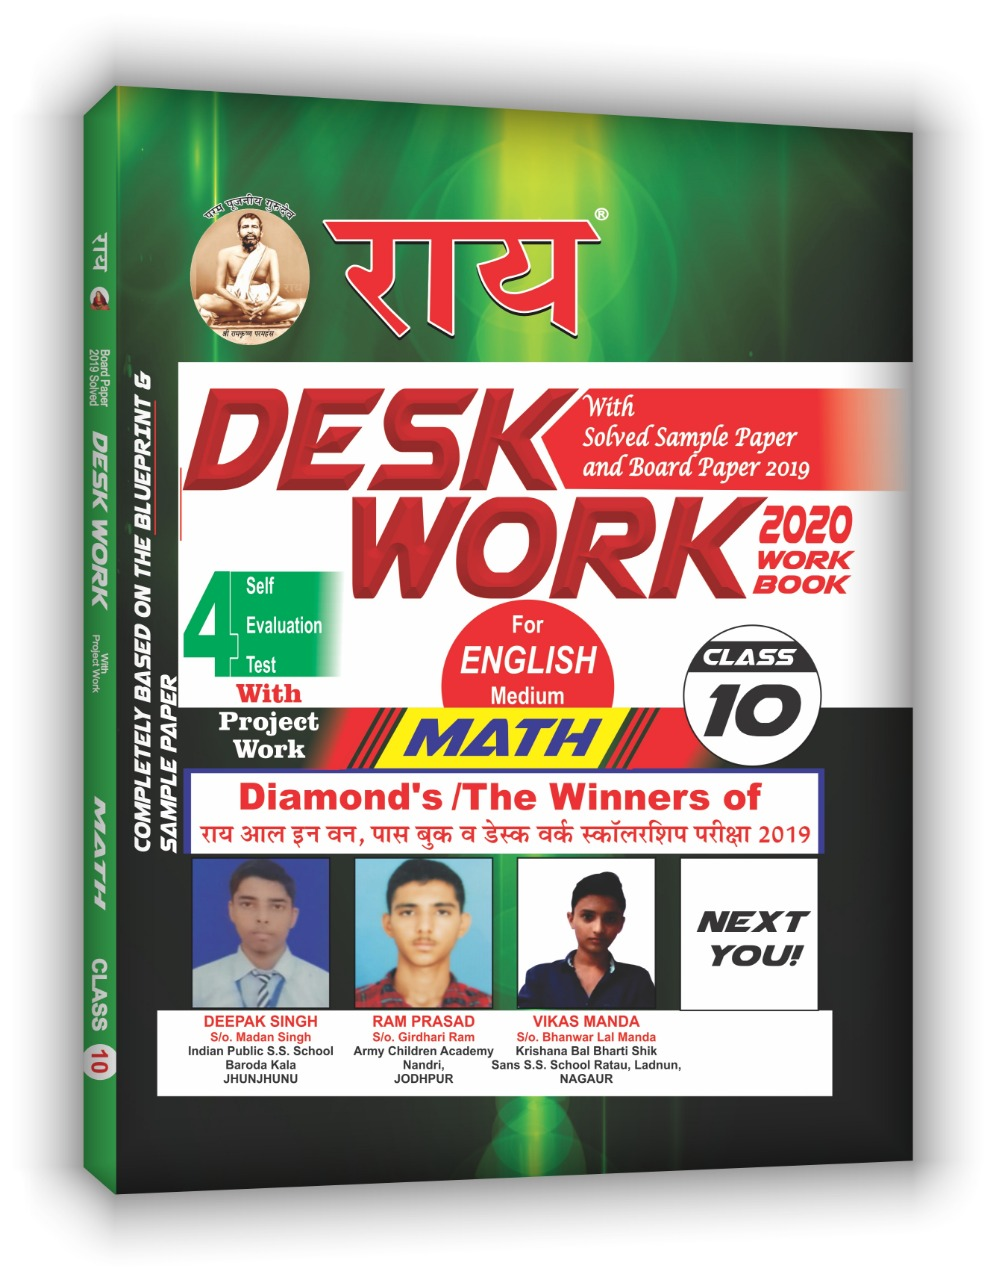 Rai Desk Work 2020 Math Class 10th English Medium with free Scholarship Exam Form( Blue Print , Board Paper 2019 Solved ,1 Board Sample Paper+ 7 Model Papers +4 Self Evaluation Papers ) ( Math ,10th) ( Desk work for RBSE English Medium) ( Rai Scholarship Exam Form class 10th E.M.)